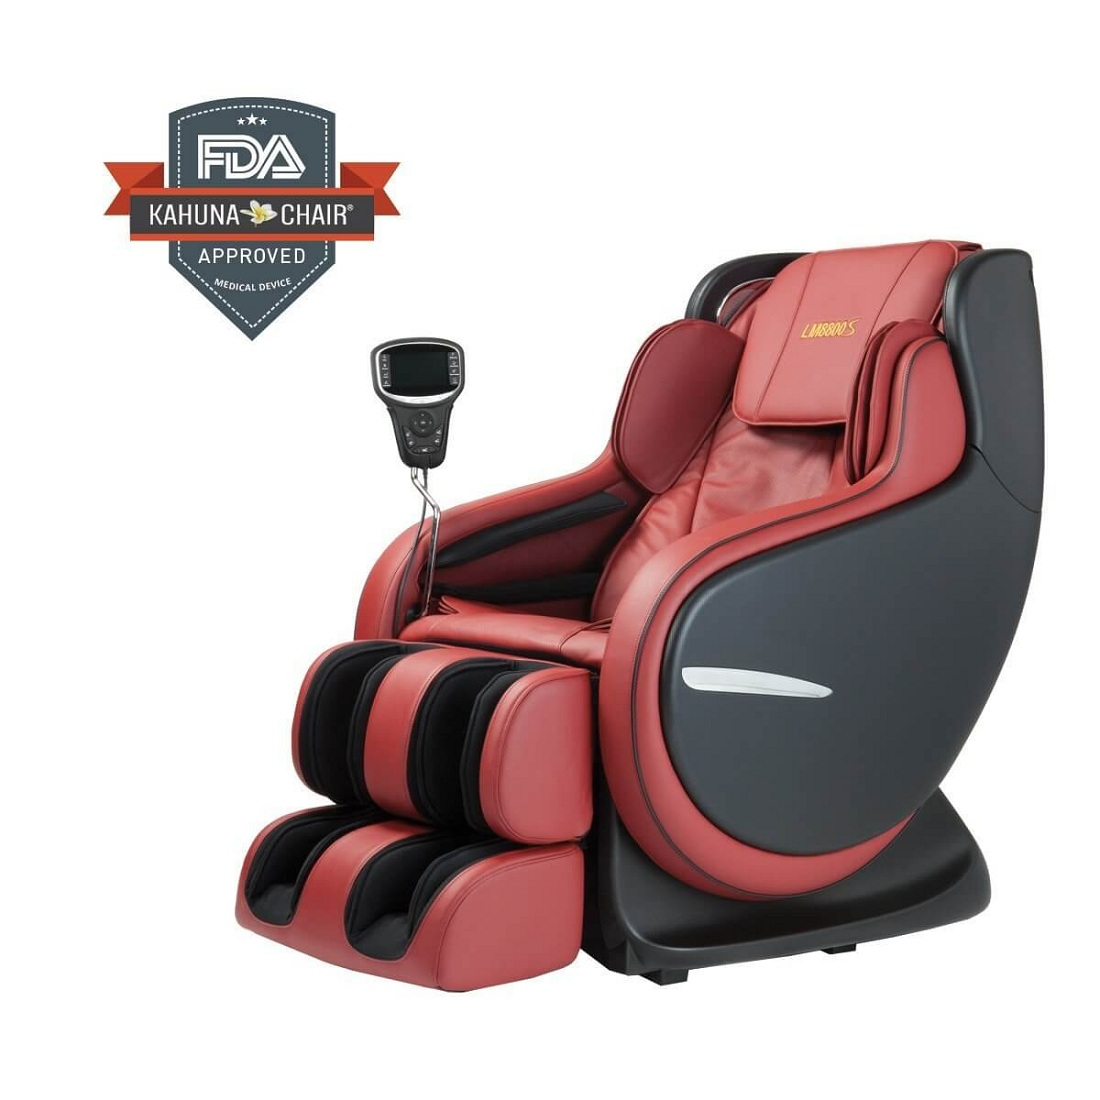 Massage Chair Cost Learn The Insights On How Much Does A Massage Chair Cost